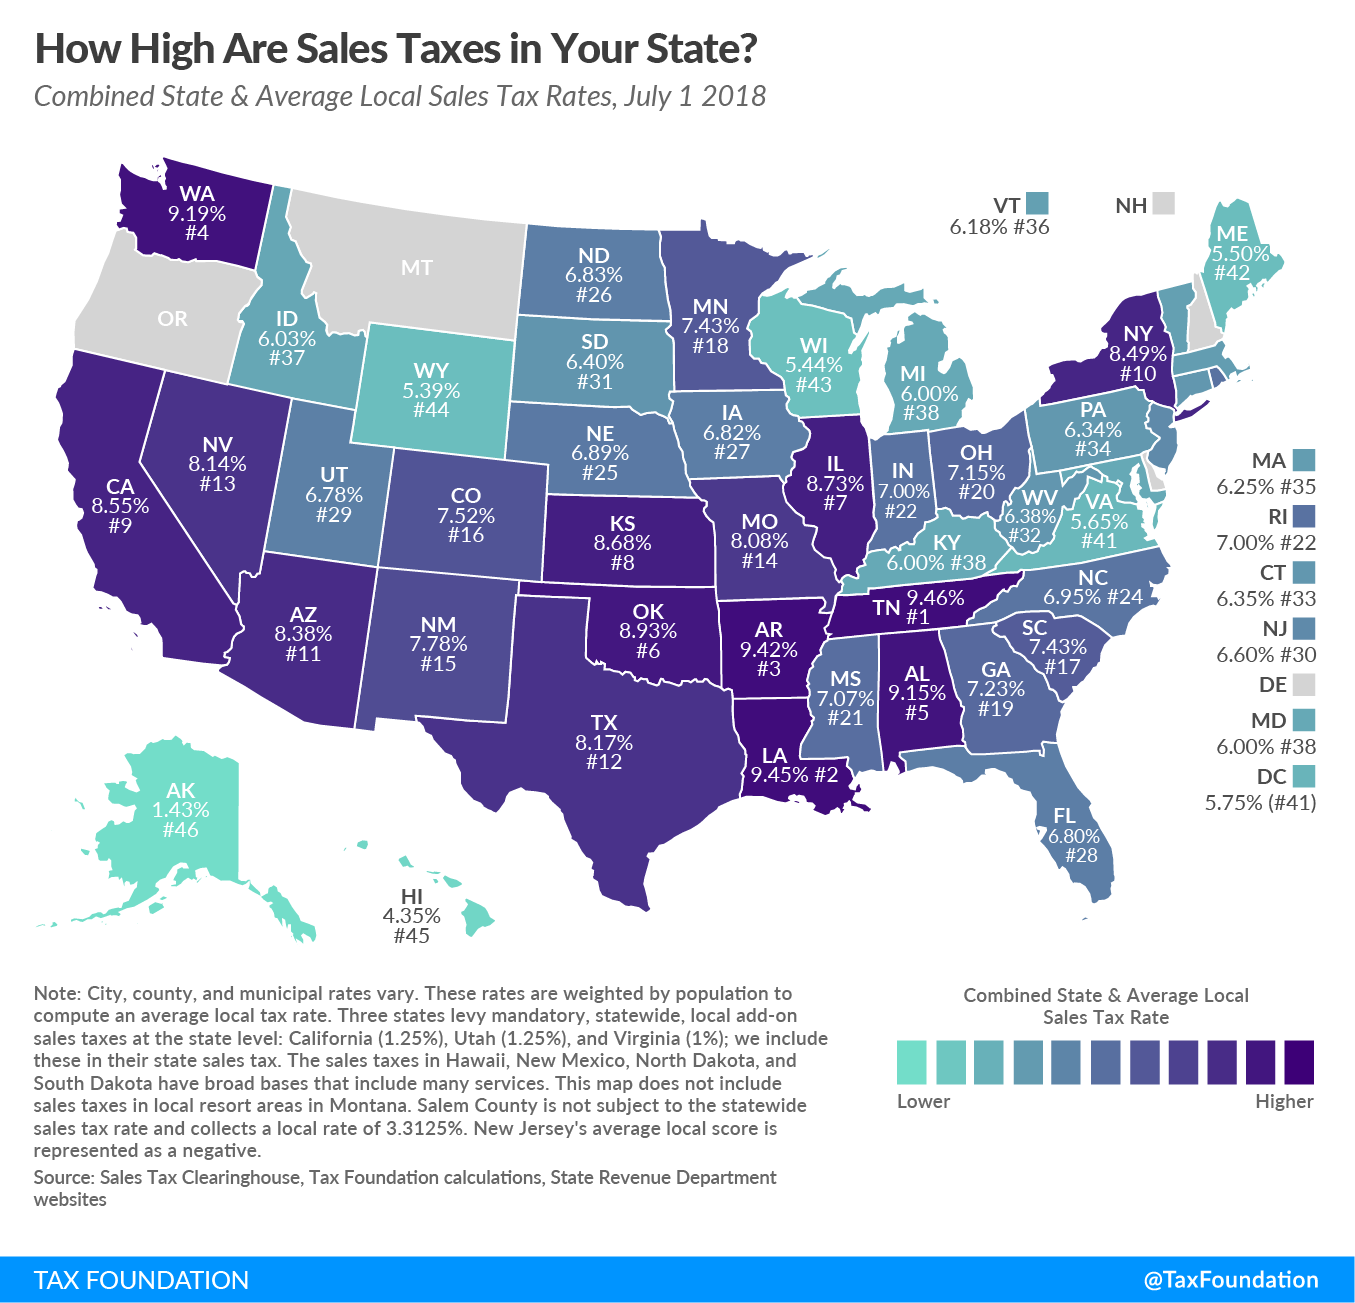 Combined state and average local sales tax rates, July 1, 2018